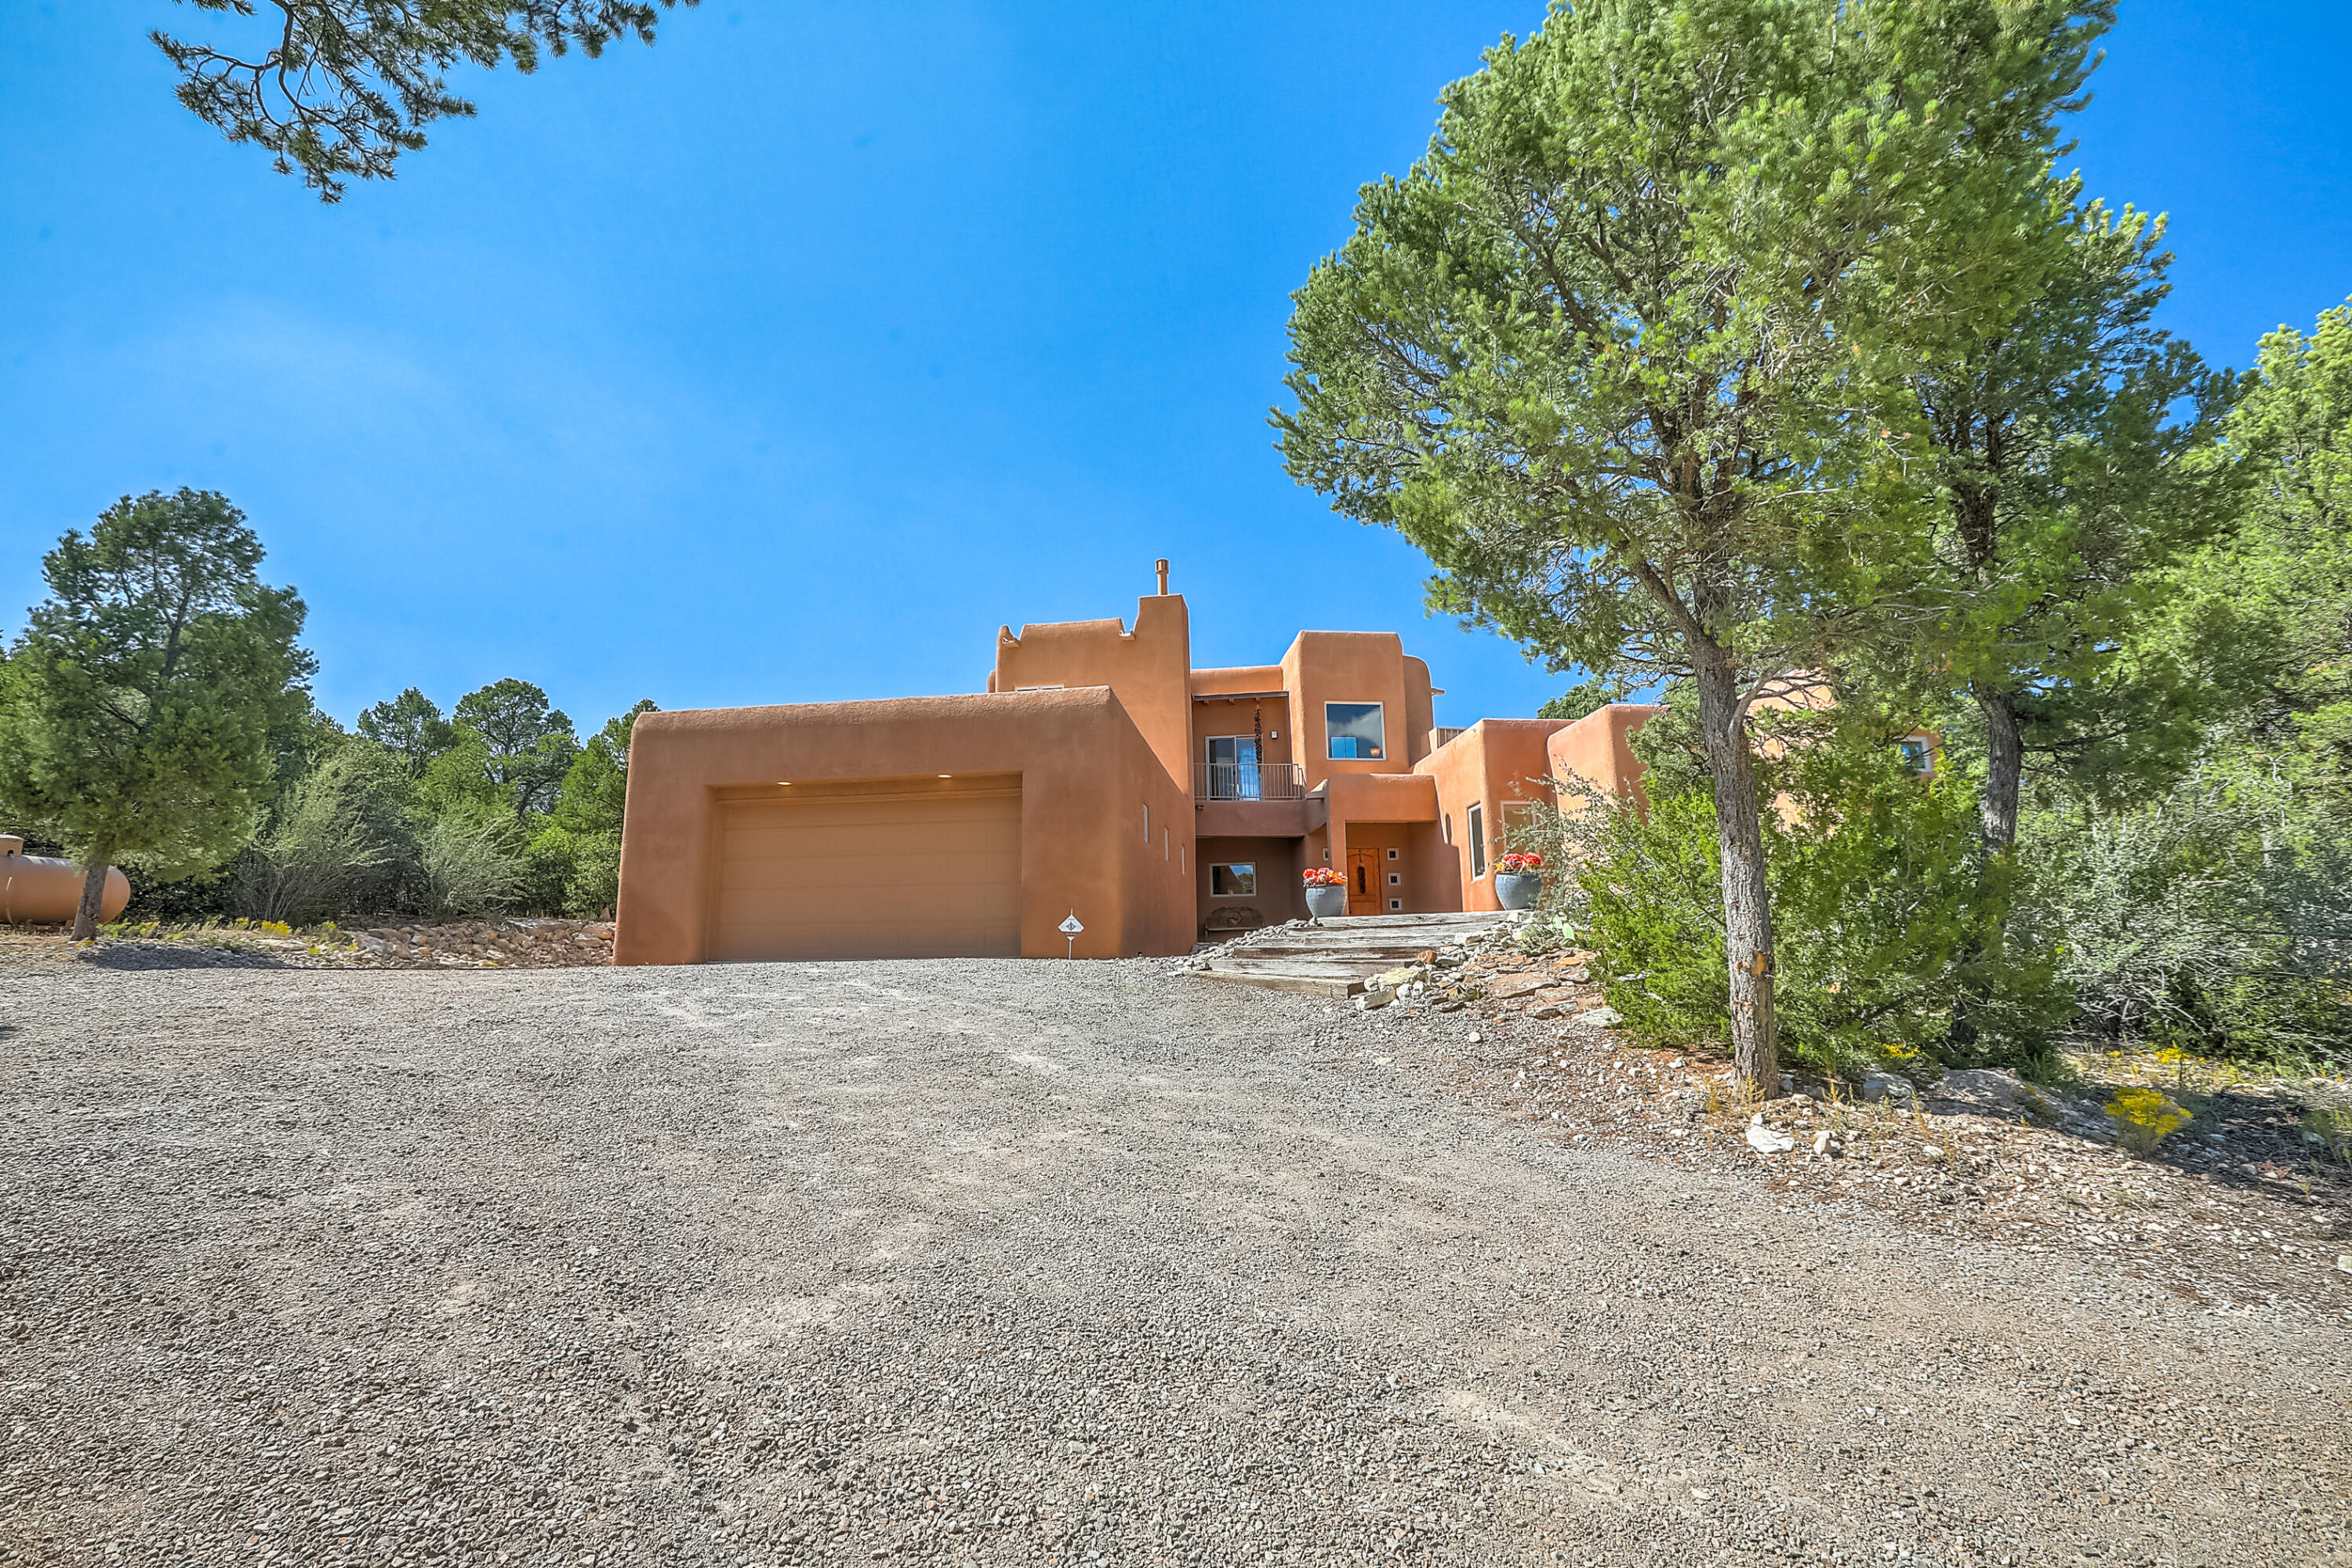 Luxury Mountain Living just 20 minutes from the city in the Coveted Rancho Verde subdivision! This densely forested lot smells of sweet pinon trees!  Quality construction with flagstones walkway. The home greets you with warmth and a grand, curved staircase with designer mosaic. Open chef's  kitchen with island, pantry, custom cabinets, granite slab countertops and stainless steel appliances. Spacious semi-formal dining space! Generous Great room with tongue and groove ceilings with vigas, classic kiva style fireplace and back patio access. Energy saving pellet stove. Conveniently located downstairs is the Primary Suite with its own upscale bath featuring dual vanities, oversized garden tub, separate glass block shower and gracious walk-in closet! Upstairs boasts 2  secondary bedrooms with